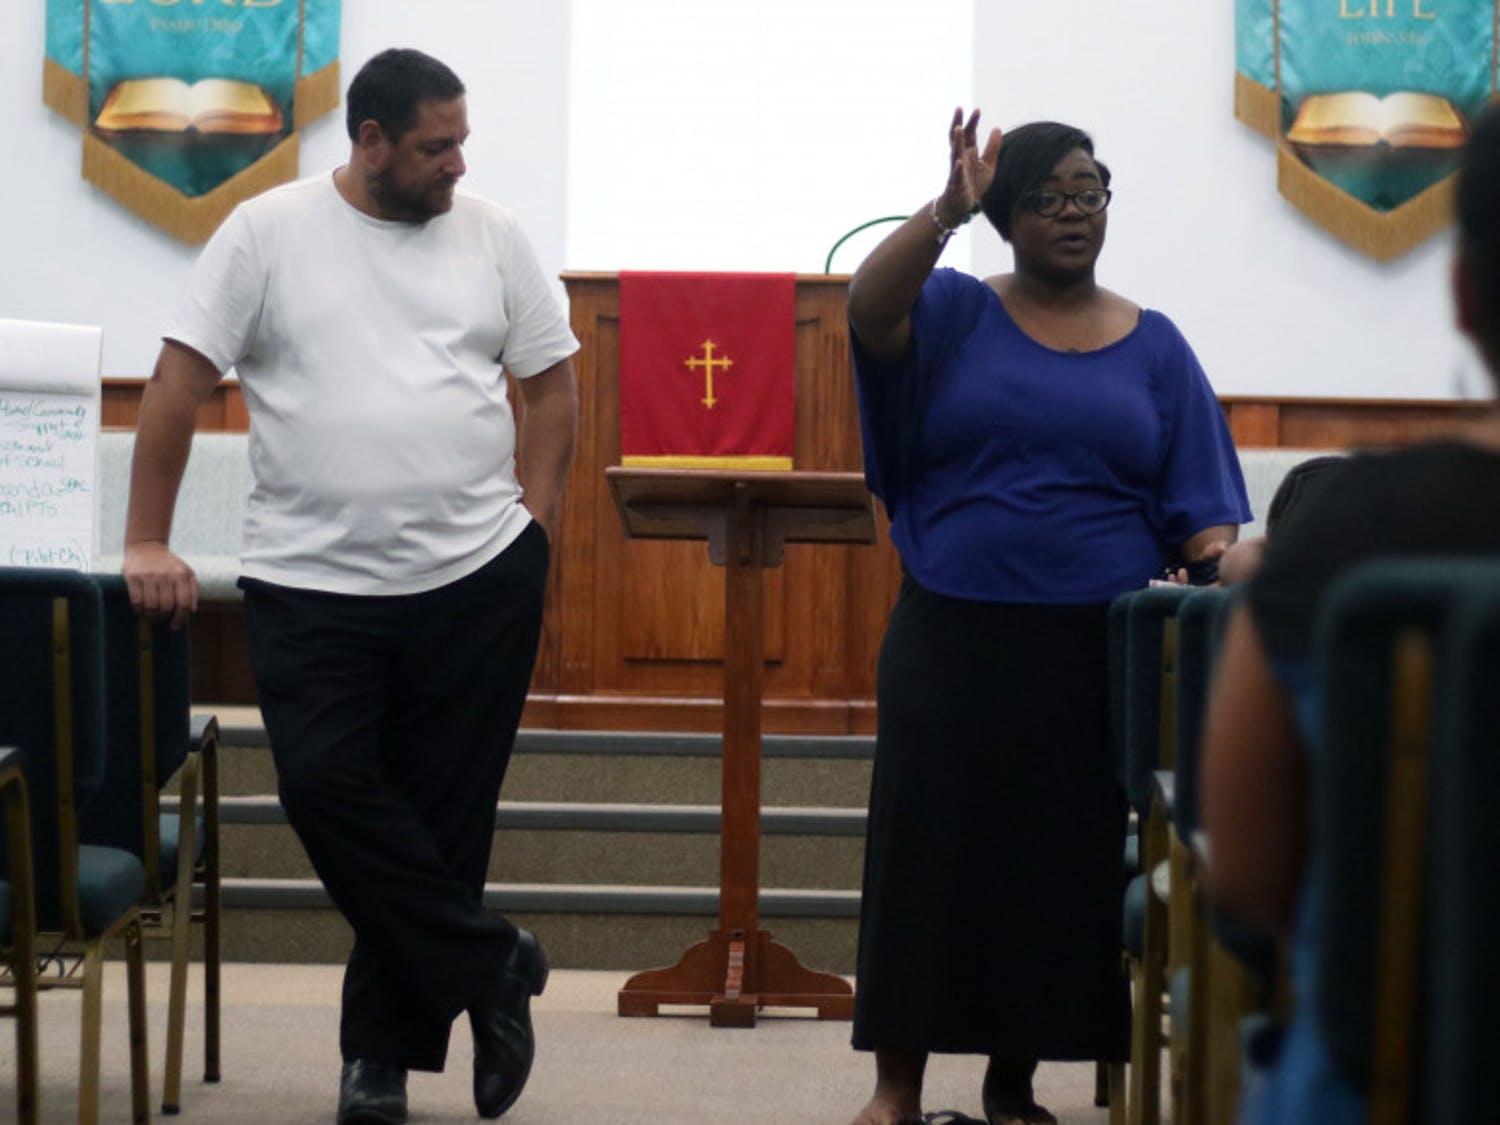 Larry Green, 48, and Chanae Jackson-Baker, 39, address the assembled attendants at a meeting to reform a recent racial equity plan by the Alachua County School Board on Monday night at DaySpring Missionary Baptist Church in Gainesville.